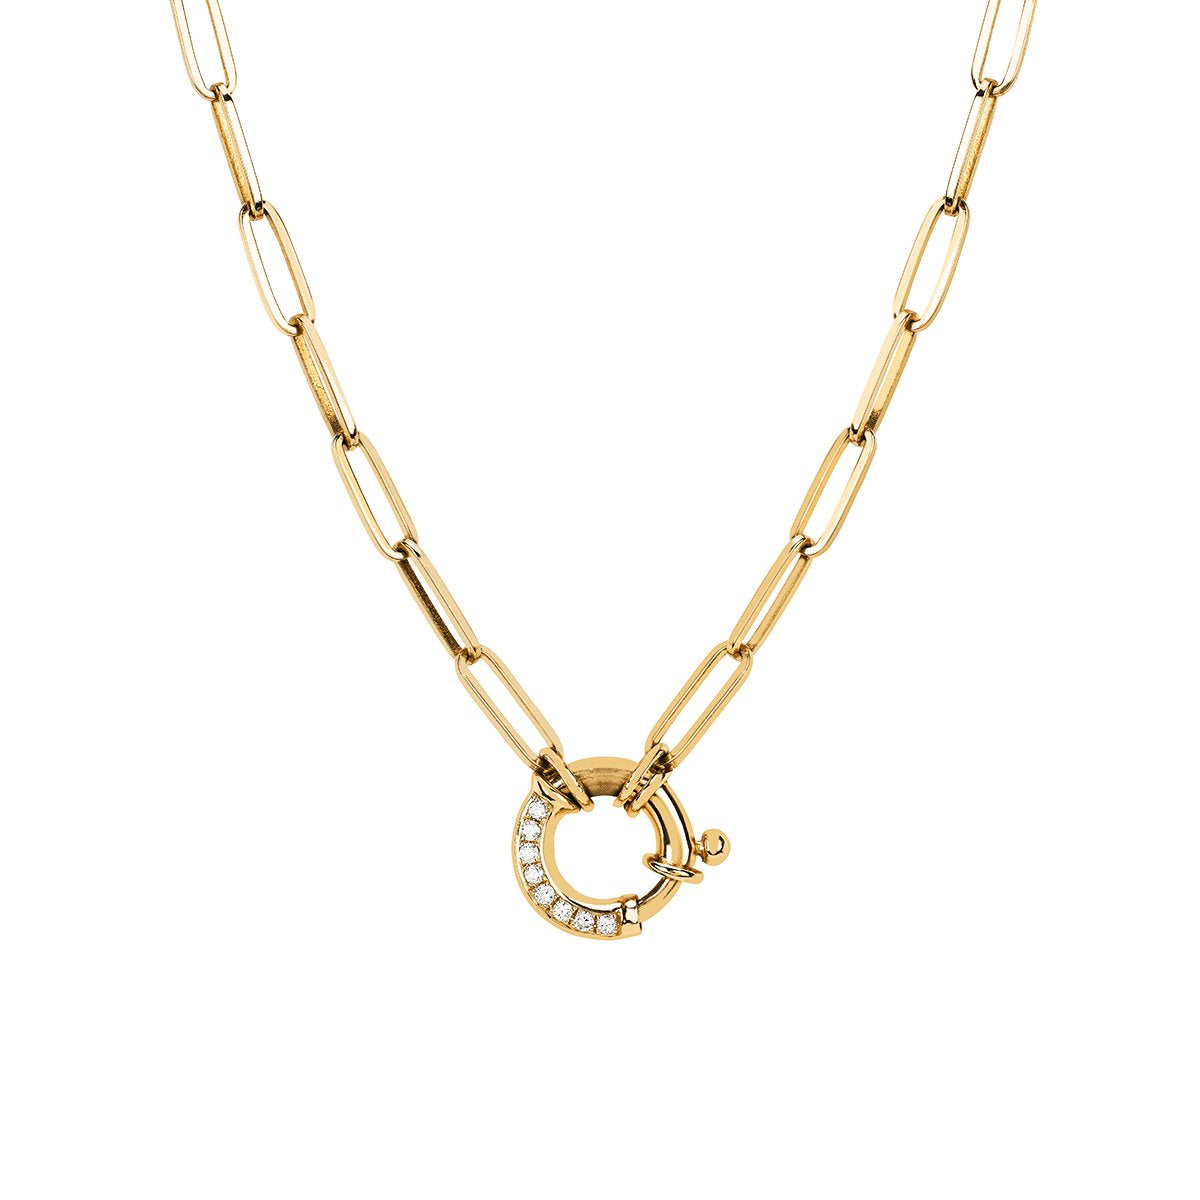 Alchemy Link Charm Necklace with Pavé Diamond Hoop Closure